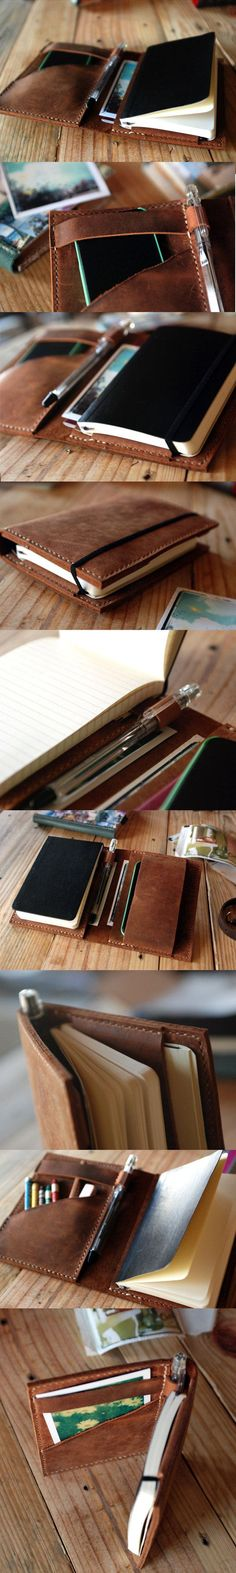 TO DO LIST...It's important to only have one to-do list otherwise you will misplace/forget to look at all of those things you know... you have to do. The solution? Keep one notepad/organiser on your desk every day that you also take home with you. That way, you will always have it on you, constantly being reminded of your tasks which, chances are, will probably make you complete them faster. Who doesn't like the feeling of accomplishment when you cross out tasks on that to-do list?